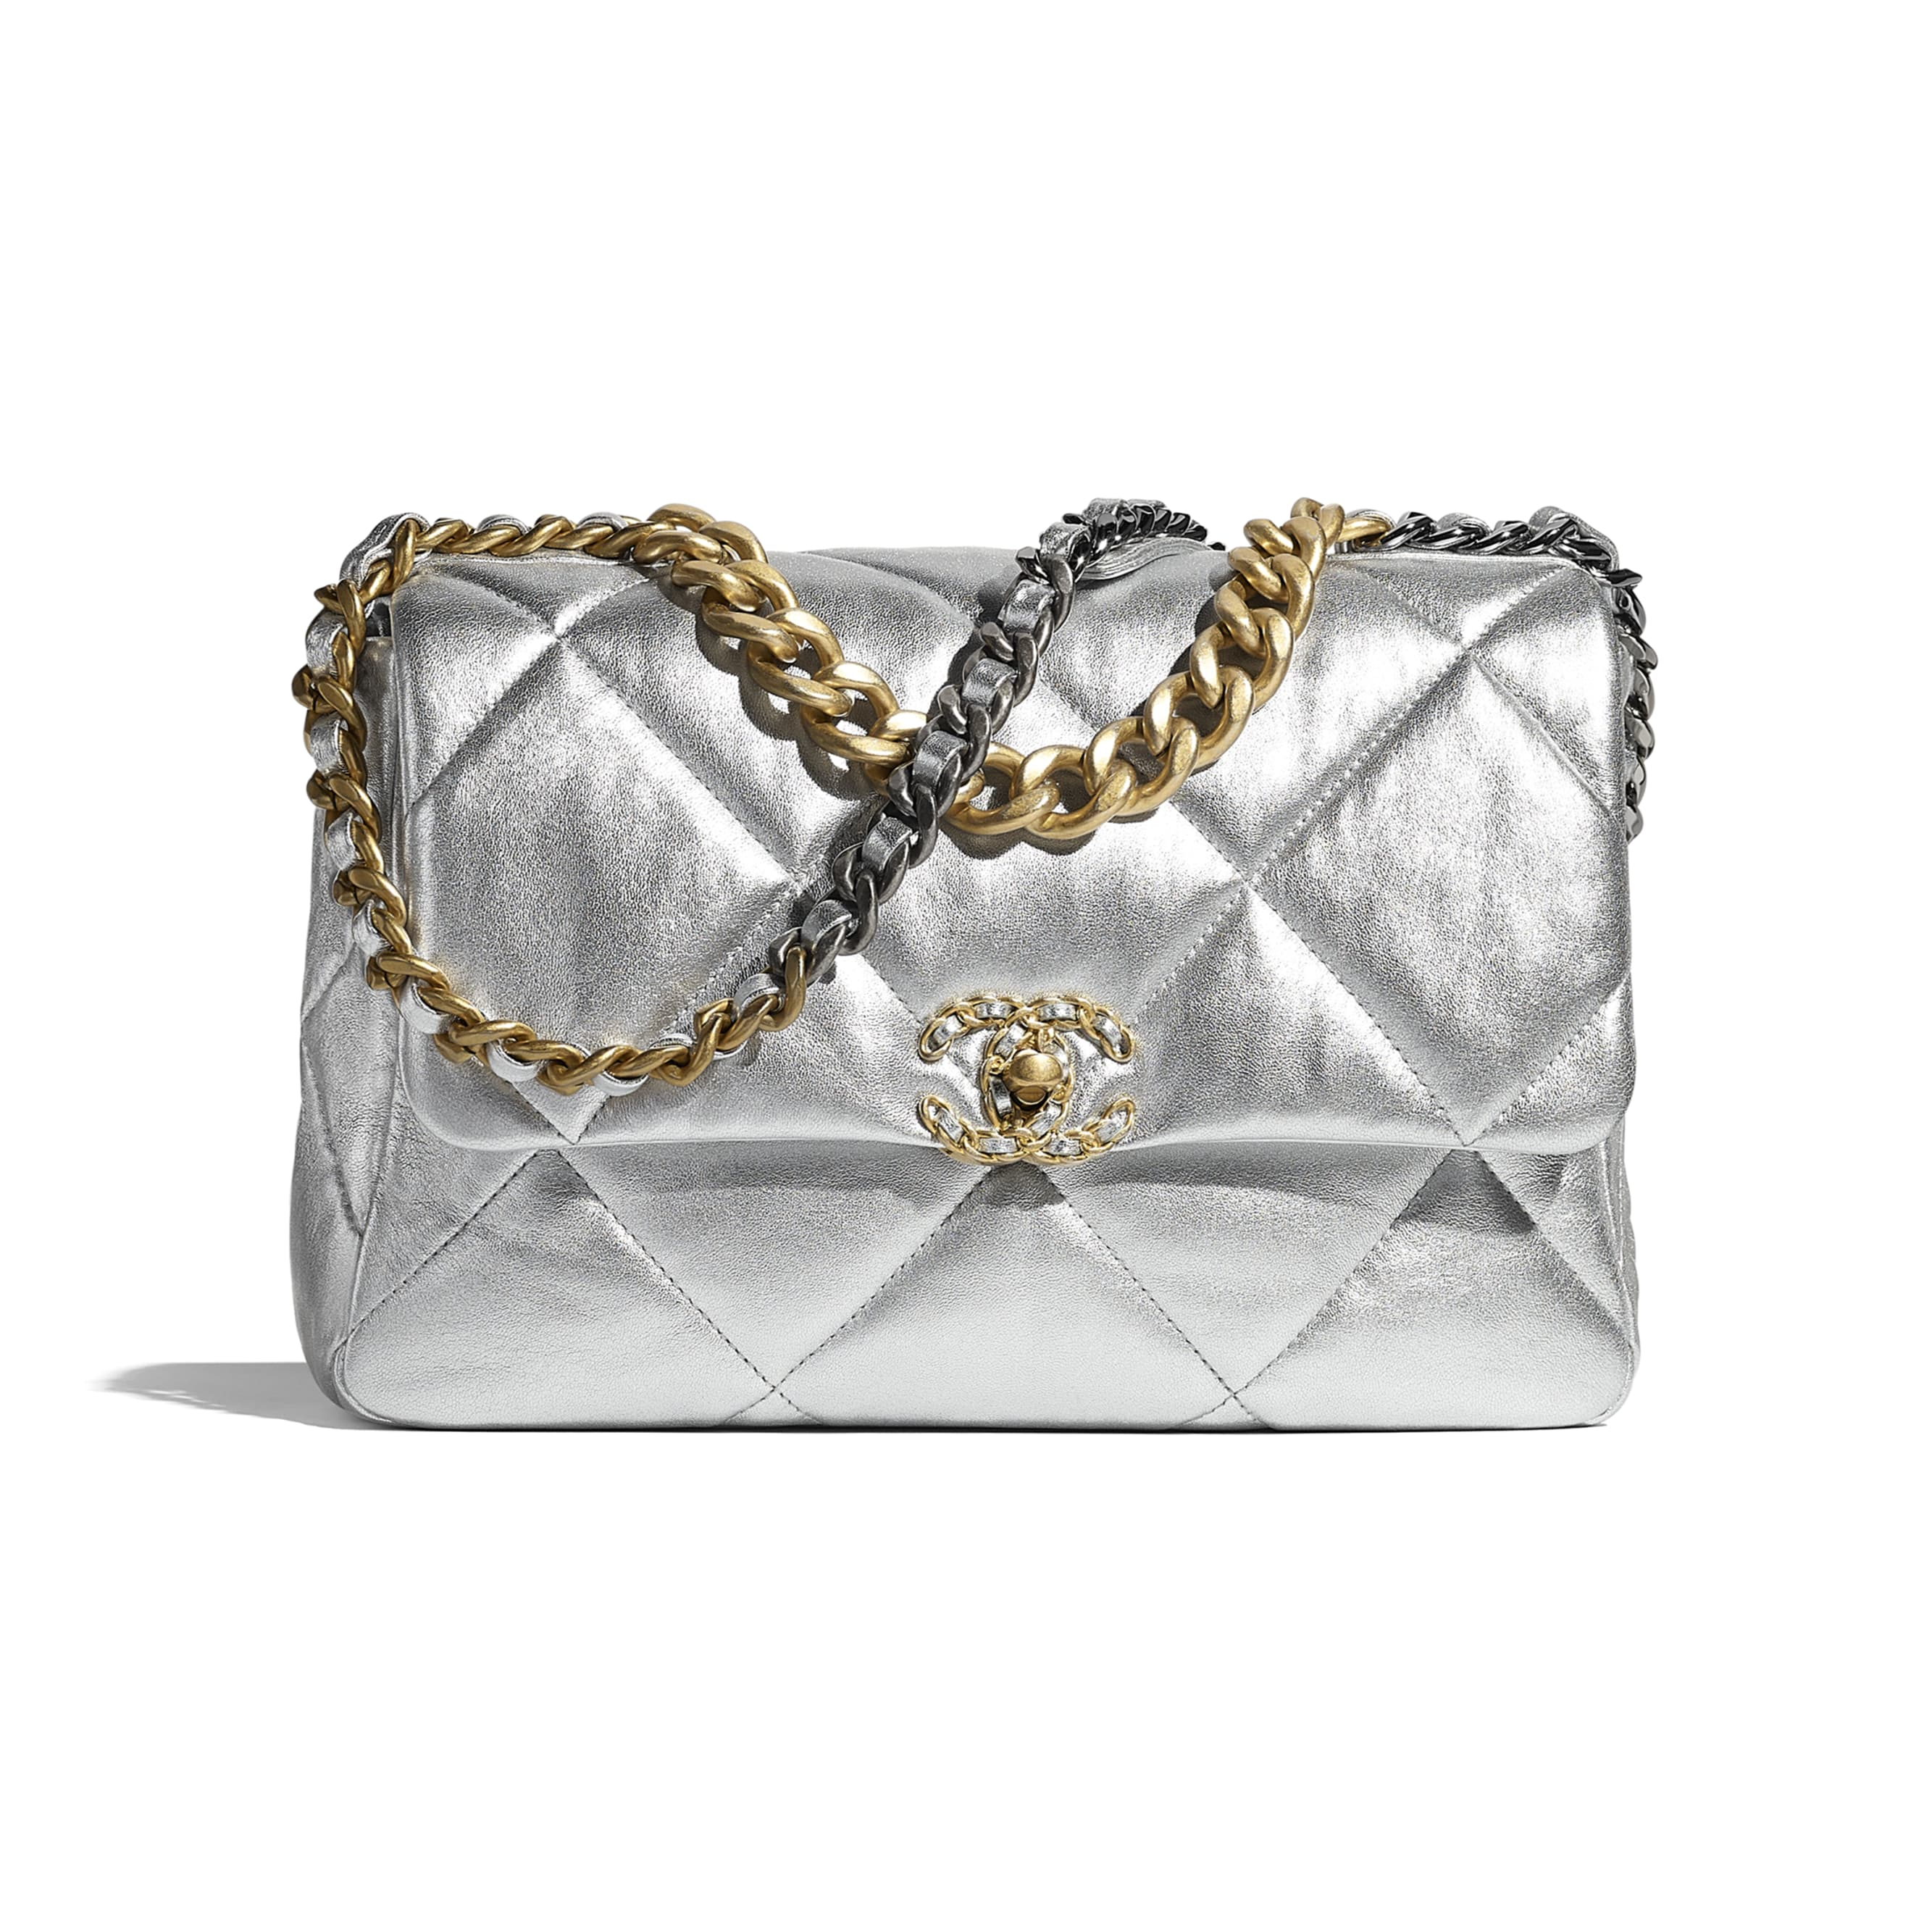 CHANEL 19 Large Handbag - Silver - Metallic Lambskin, Gold-Tone, Silver-Tone & Ruthenium-Finish Metal - CHANEL - Default view - see standard sized version